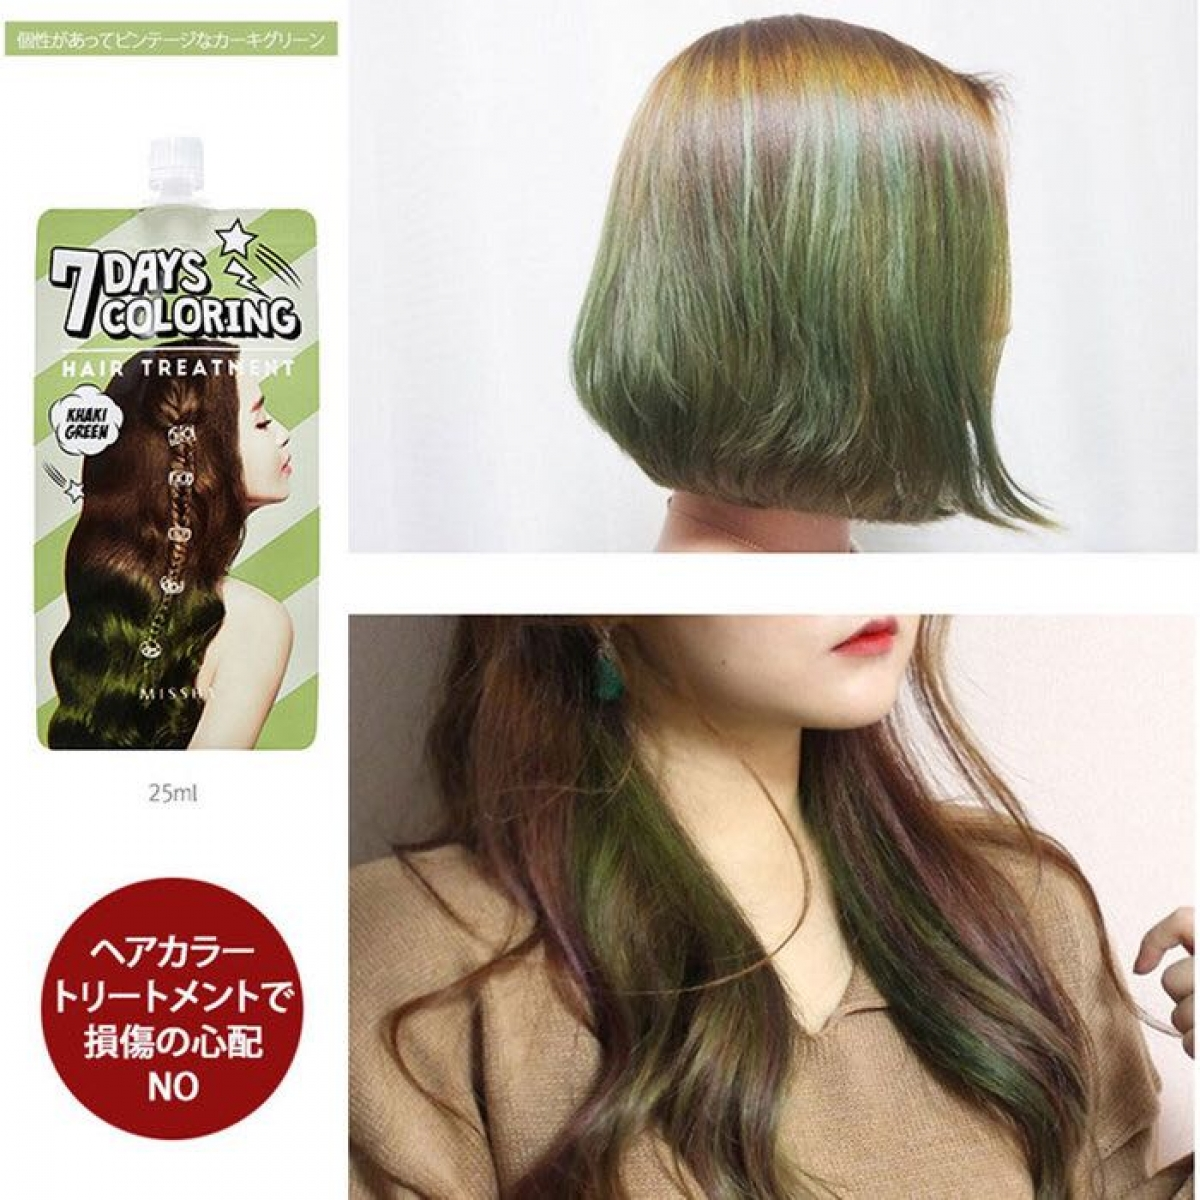 7 Days Coloring Hair Treatment Makeup Beauty House